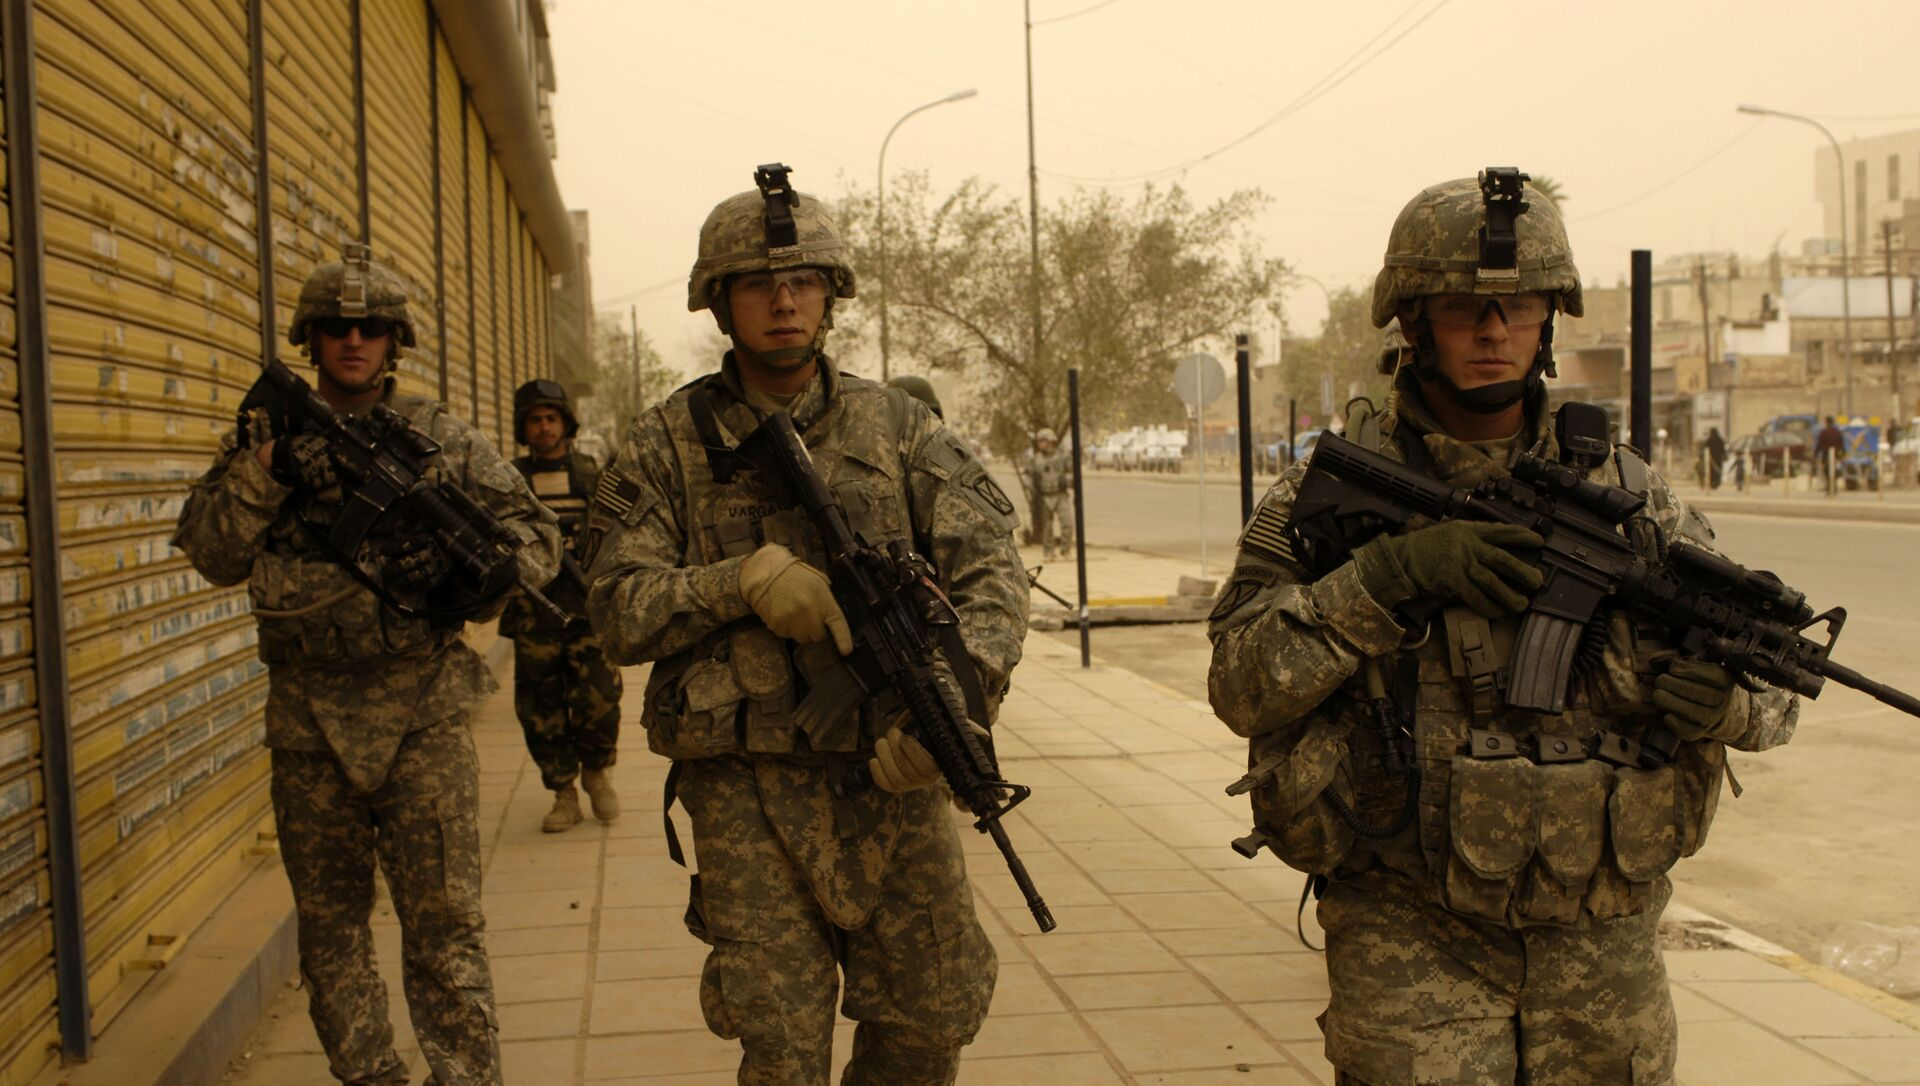 U.S. Army Soldiers assigned to 5th Battalion, 25th Field Artillery Regiment, 4th Brigade Combat Team, 10th Mountain Division, Iraqi National Police from 3rd Battalion, 1st Brigade Combat Team, 1st Division and Iraqi army soldiers conduct a search mission for illegal firearms and improvised explosive device caches in Baghdad, Iraq, March 15, 2008. - Sputnik International, 1920, 26.07.2021